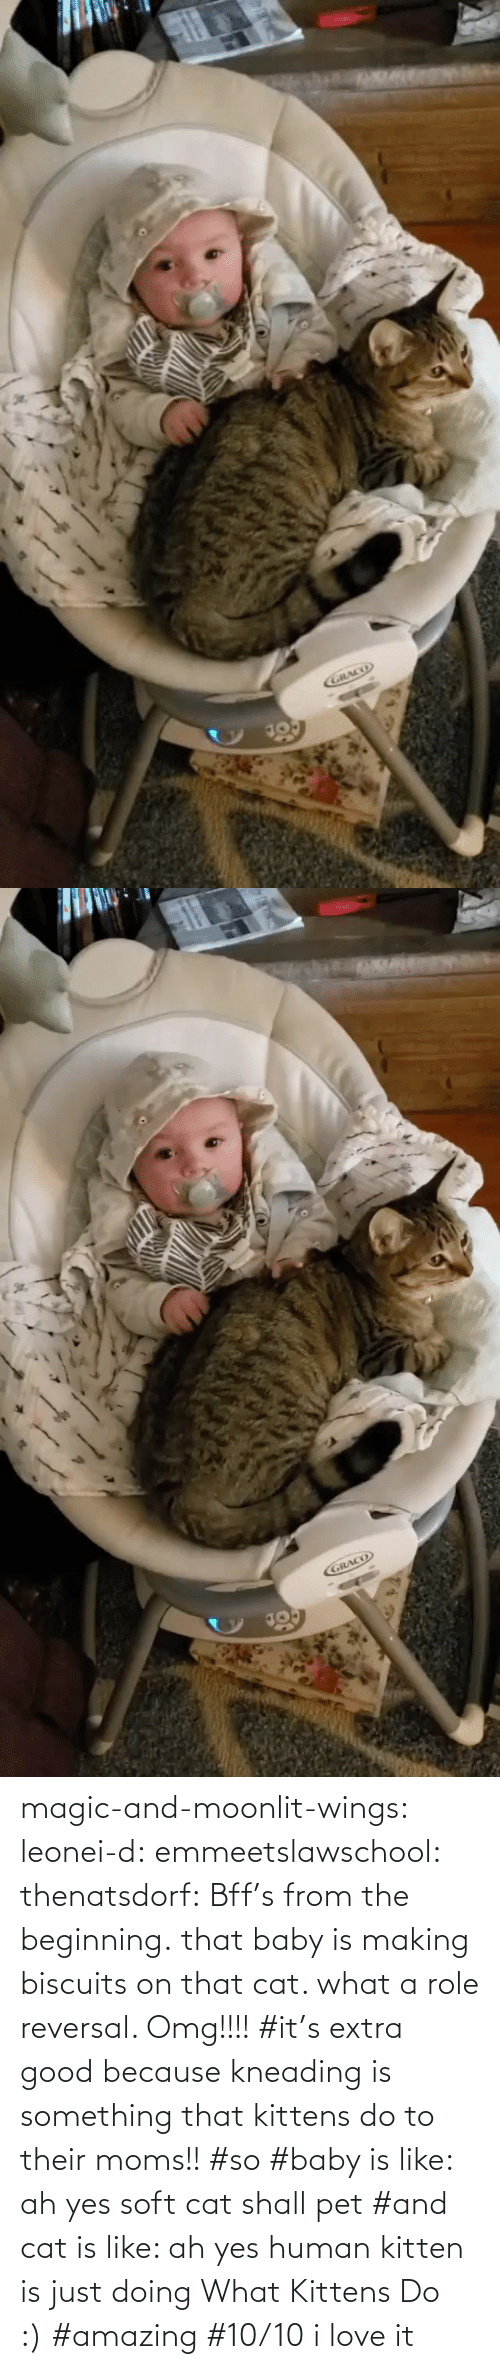 kitten: magic-and-moonlit-wings: leonei-d:  emmeetslawschool:  thenatsdorf: Bff's from the beginning. that baby is making biscuits on that cat. what a role reversal.    Omg!!!!     #it's extra good because kneading is something that kittens do to their moms!! #so #baby is like: ah yes soft cat shall pet #and cat is like: ah yes human kitten is just doing What Kittens Do :) #amazing #10/10 i love it